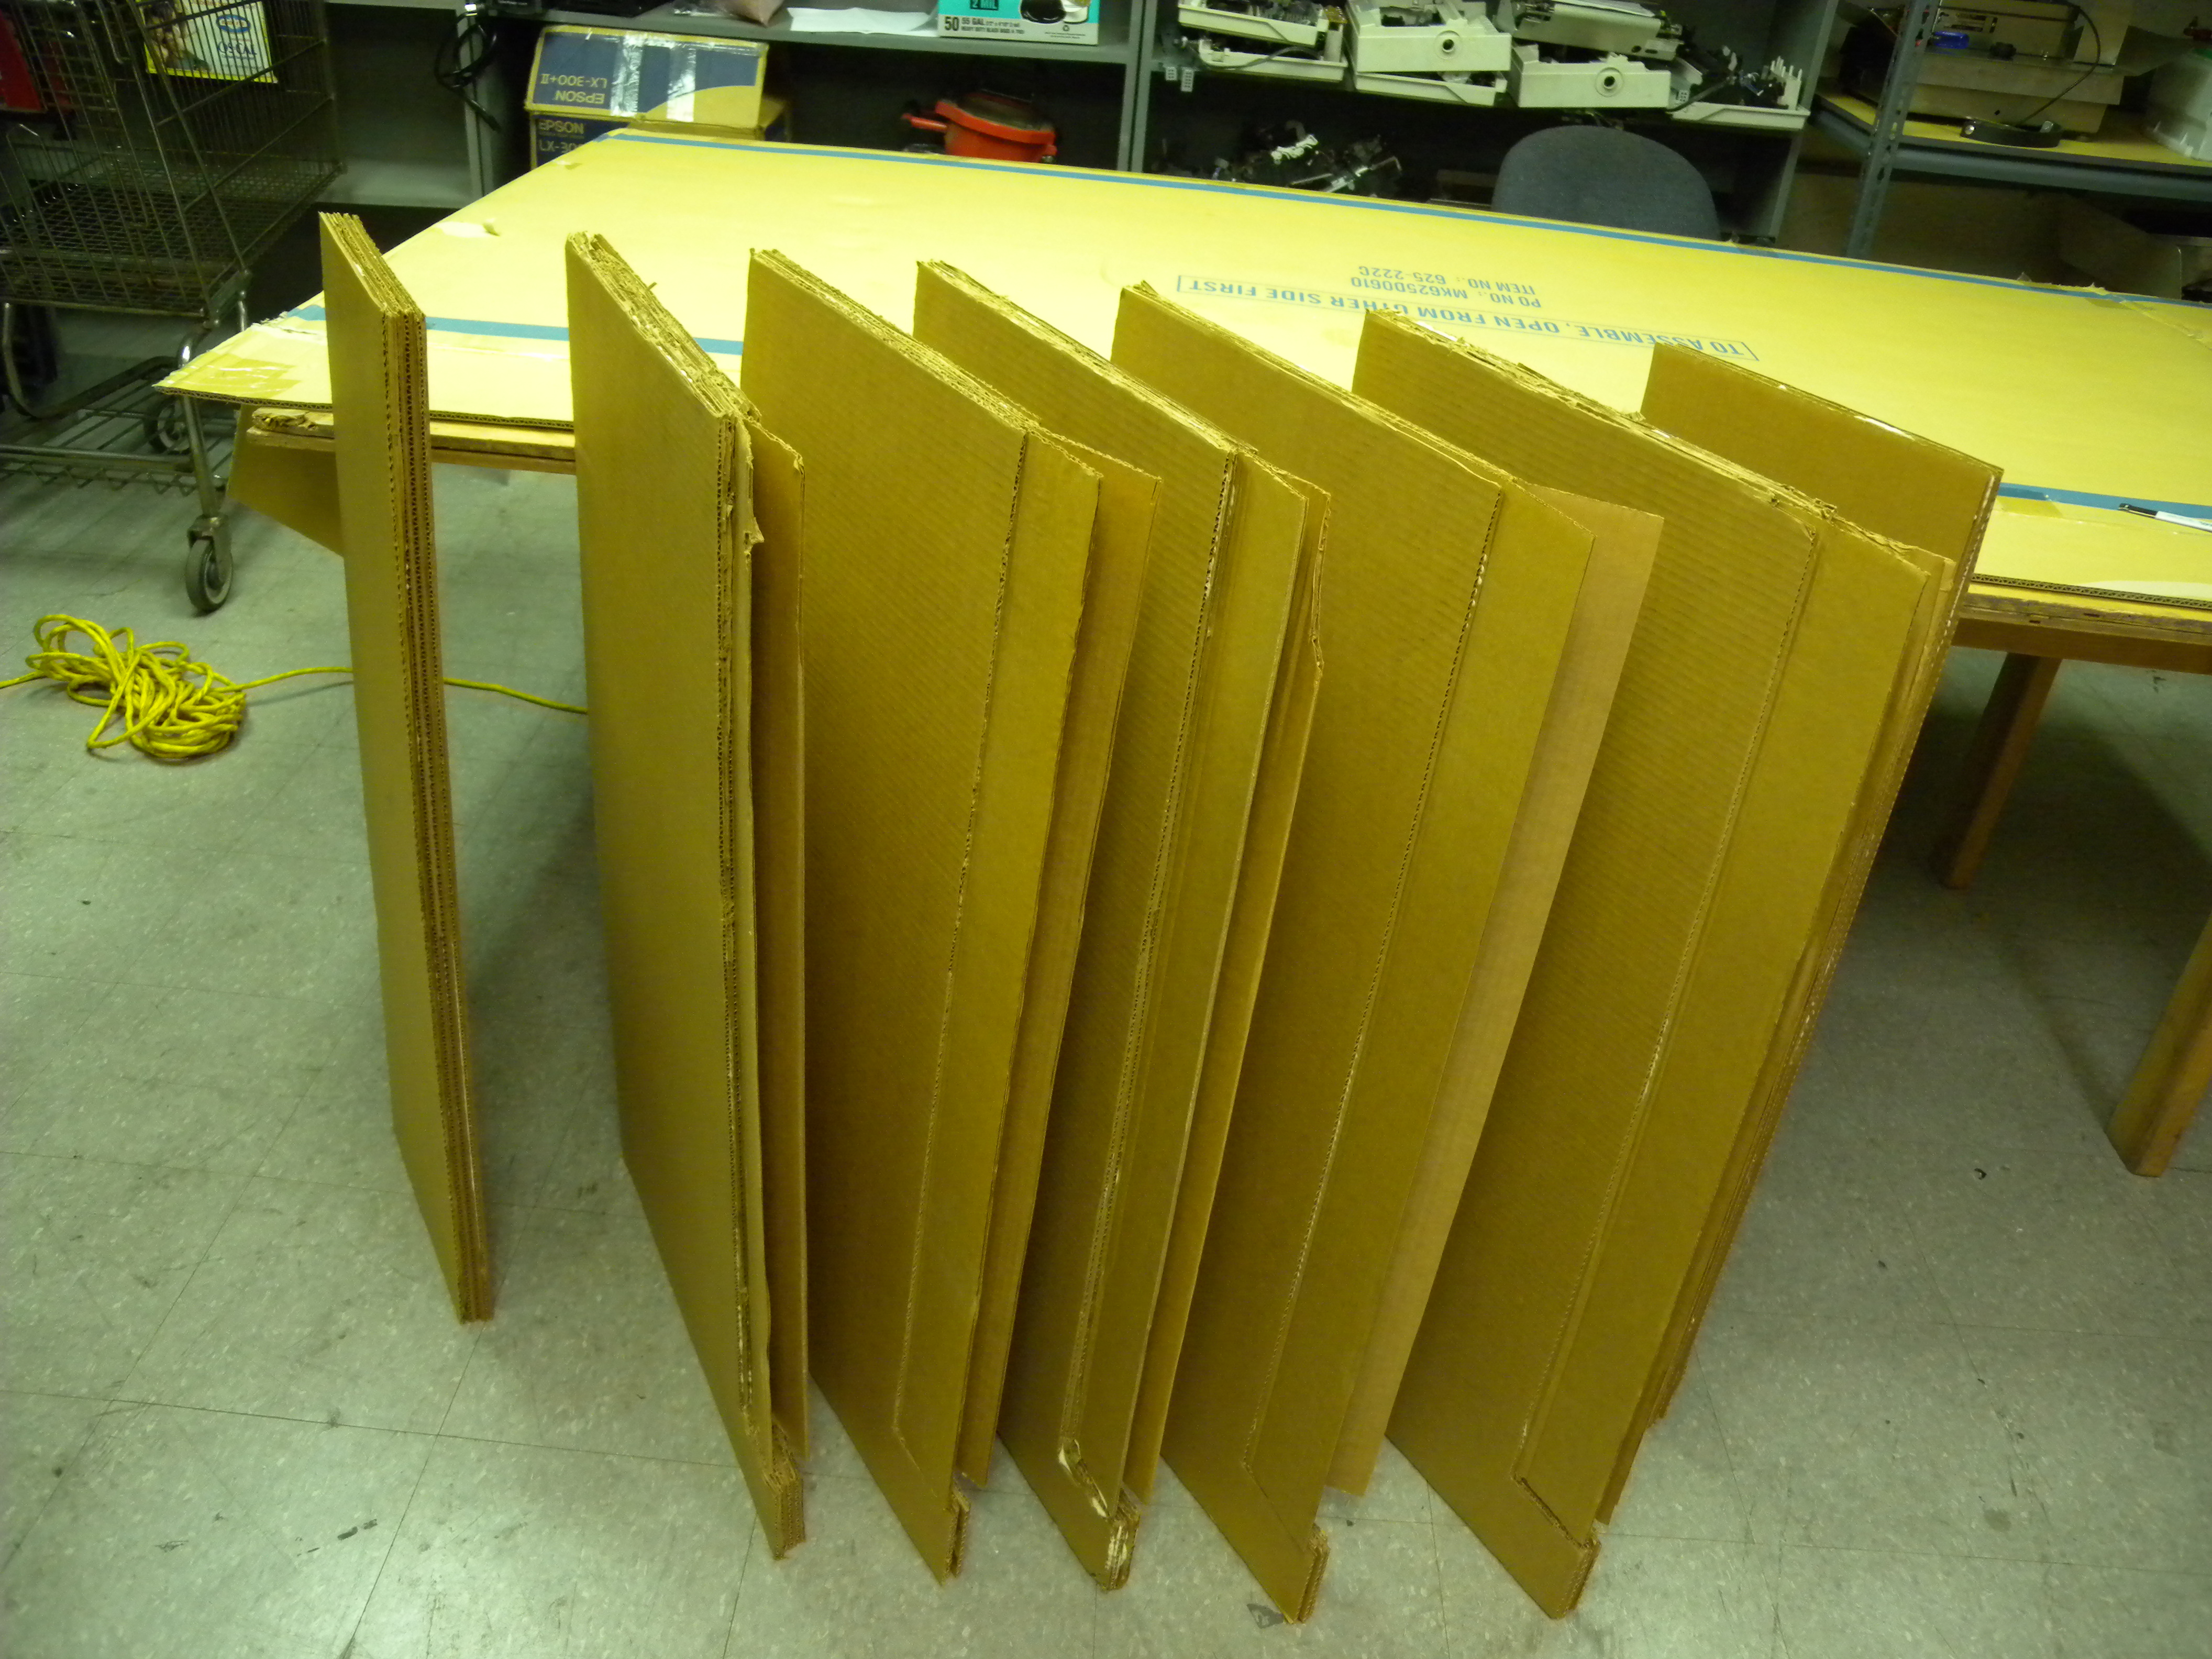 The Card Bar - Functional Cardboard Furniture: 12 Steps (with Pictures)